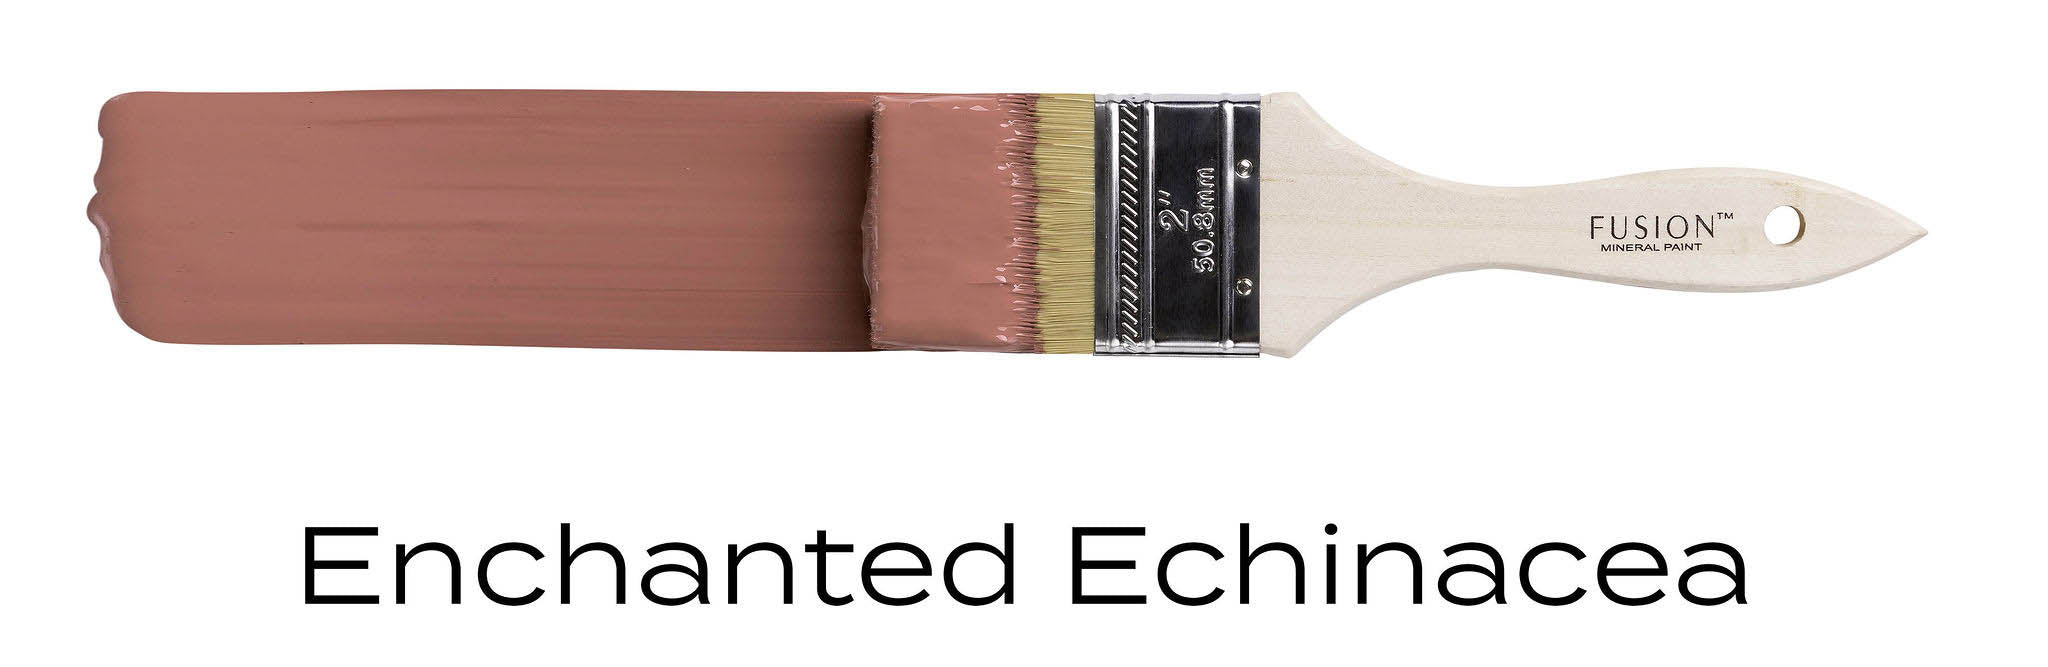 Enchanted Echinacea fusion mineral paint stockist UK England Supplier